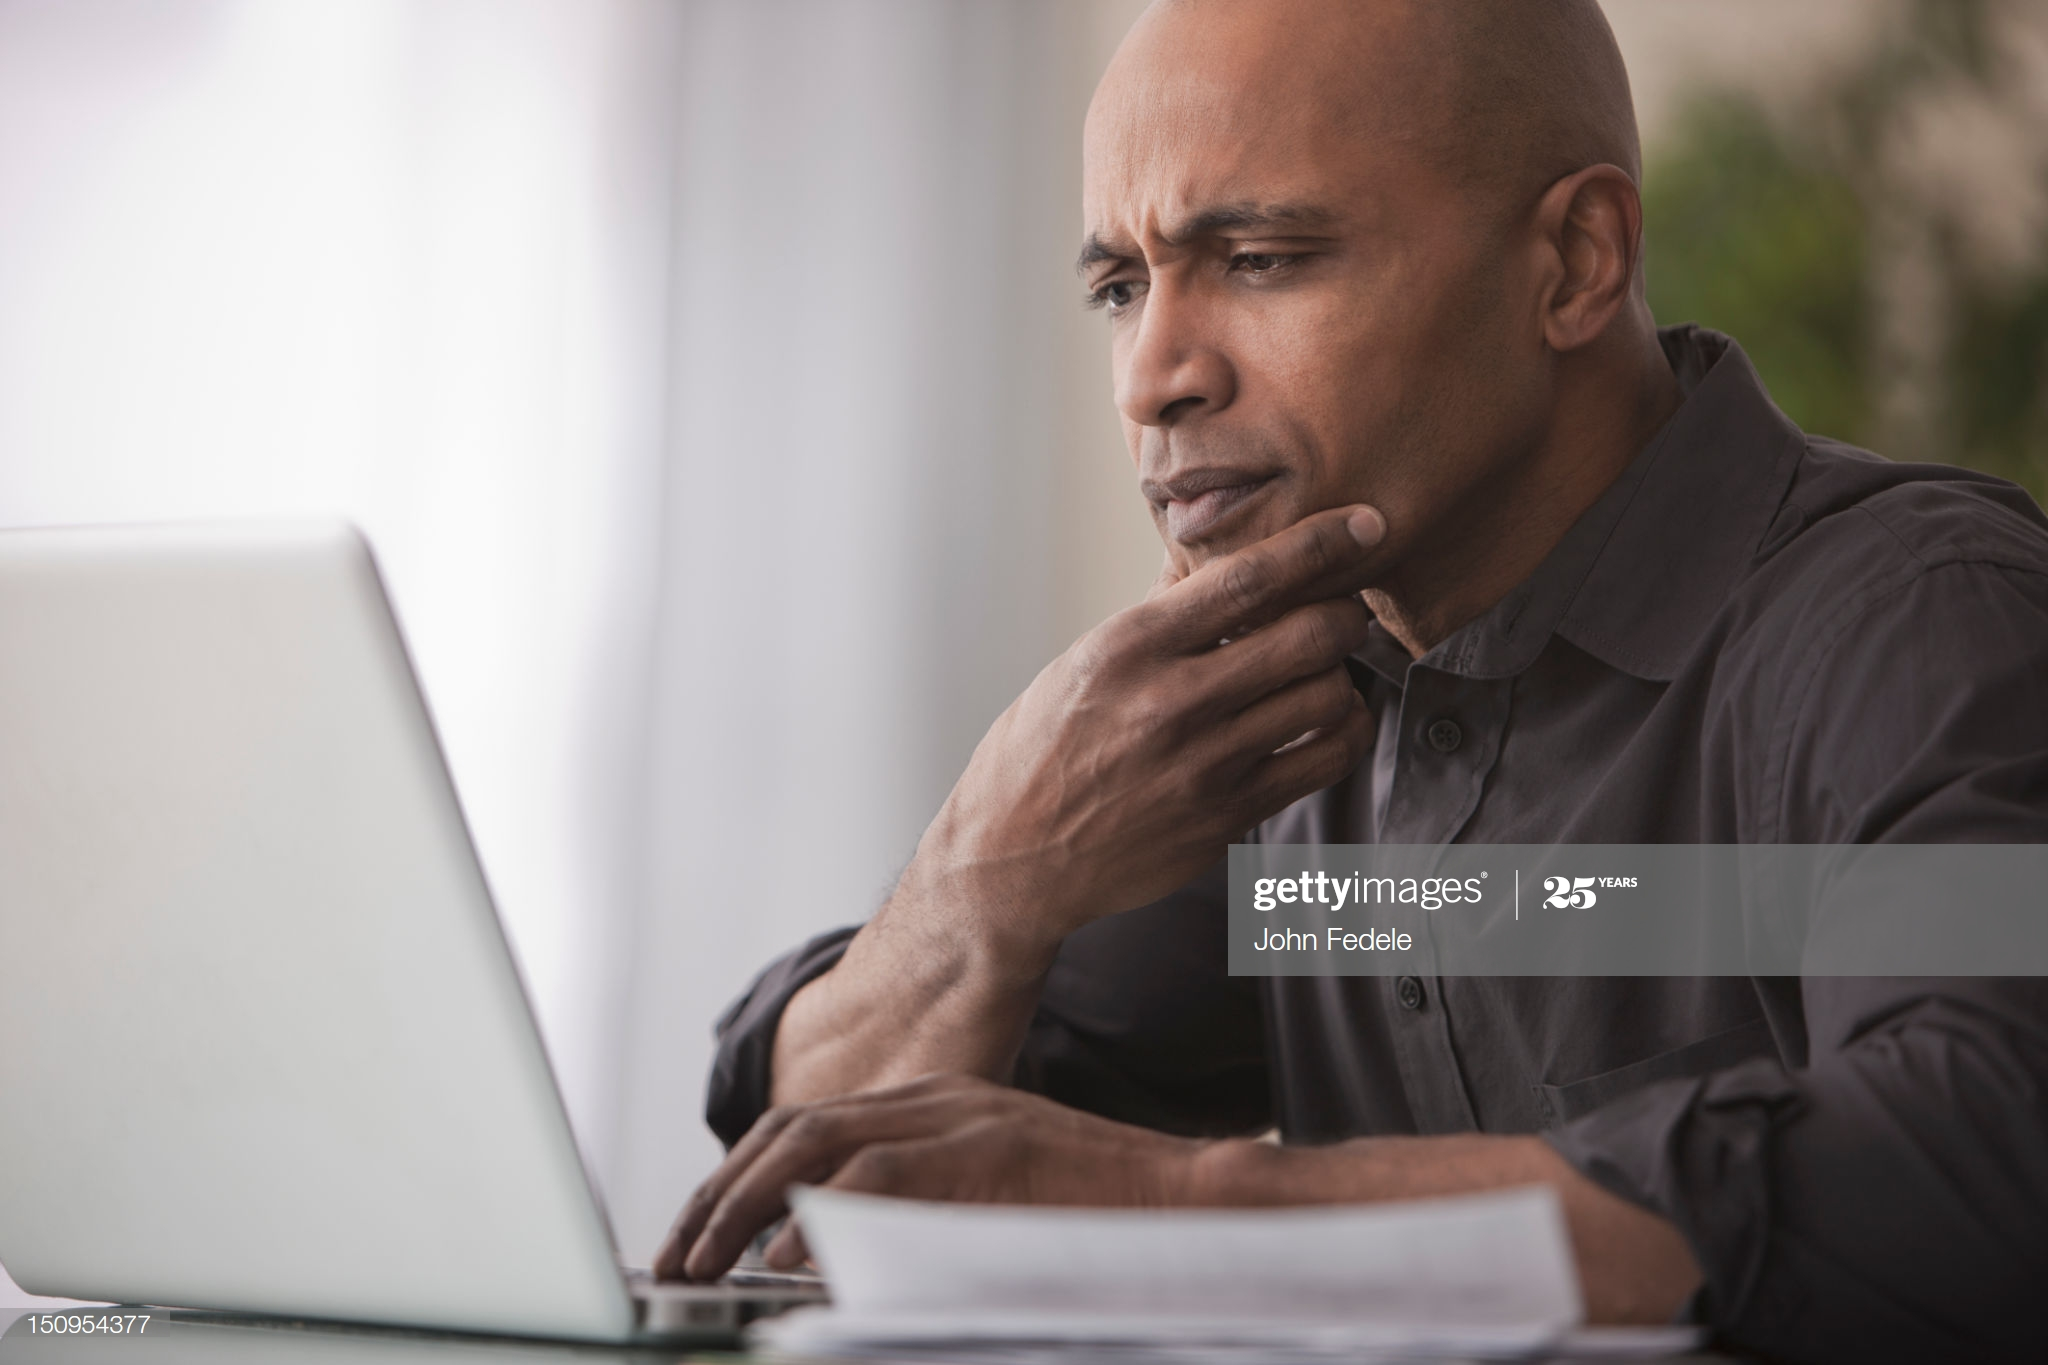 black man worrying confused computer starring